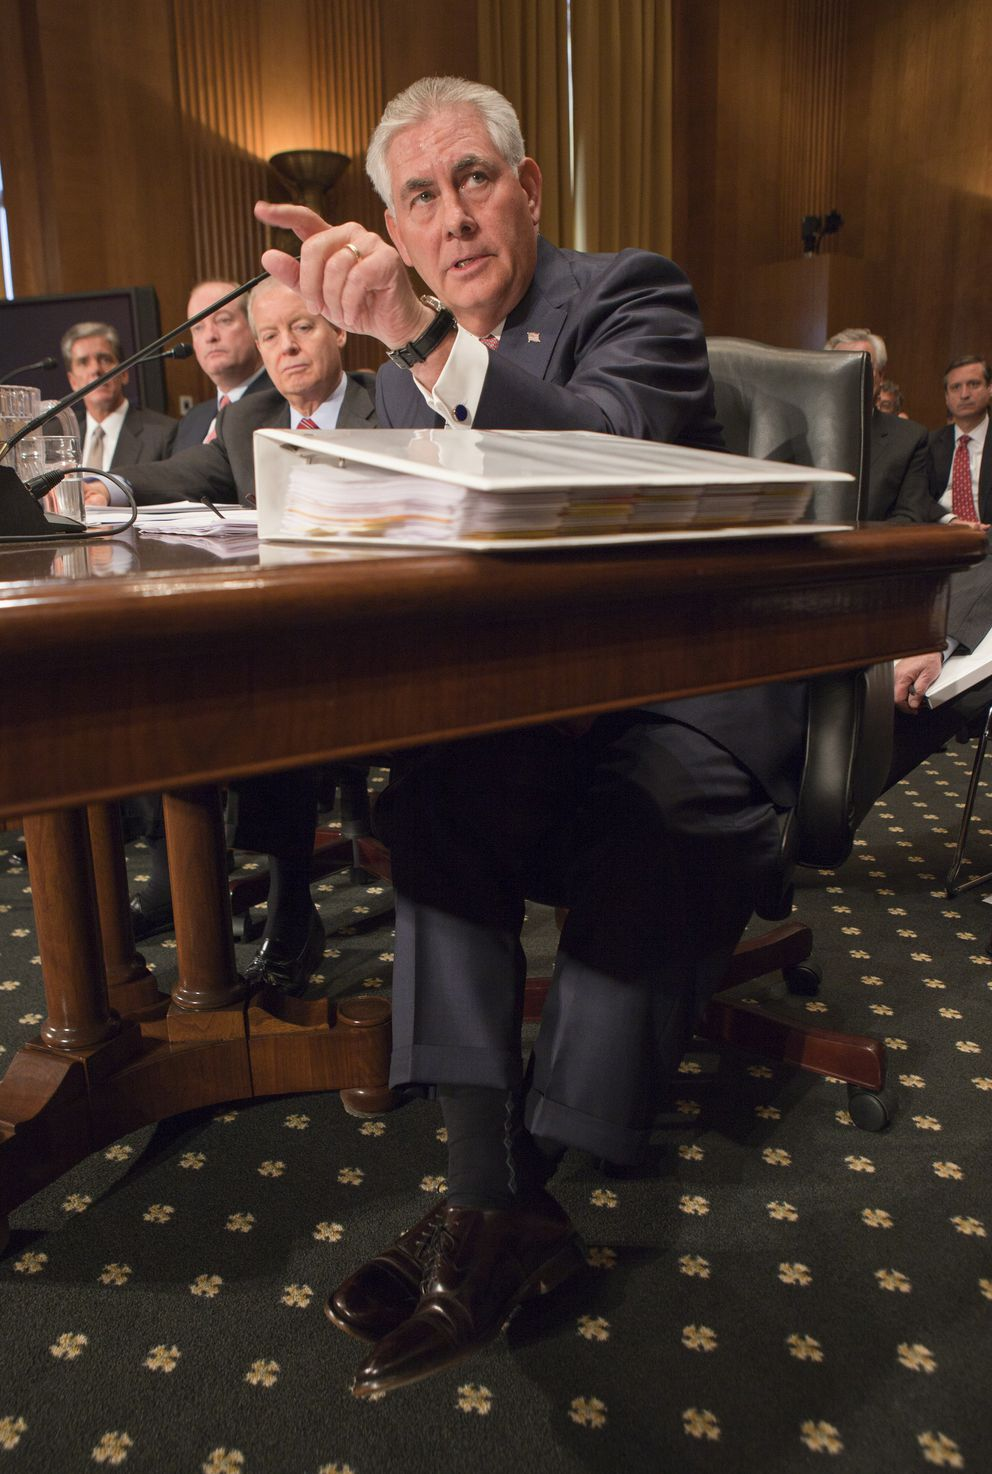 Rex Tillerson, the chief executive of Exxon Mobil, testifies on Capitol Hill in Washington, May 12, 2011. (Stephen Crowley/The New York Times)